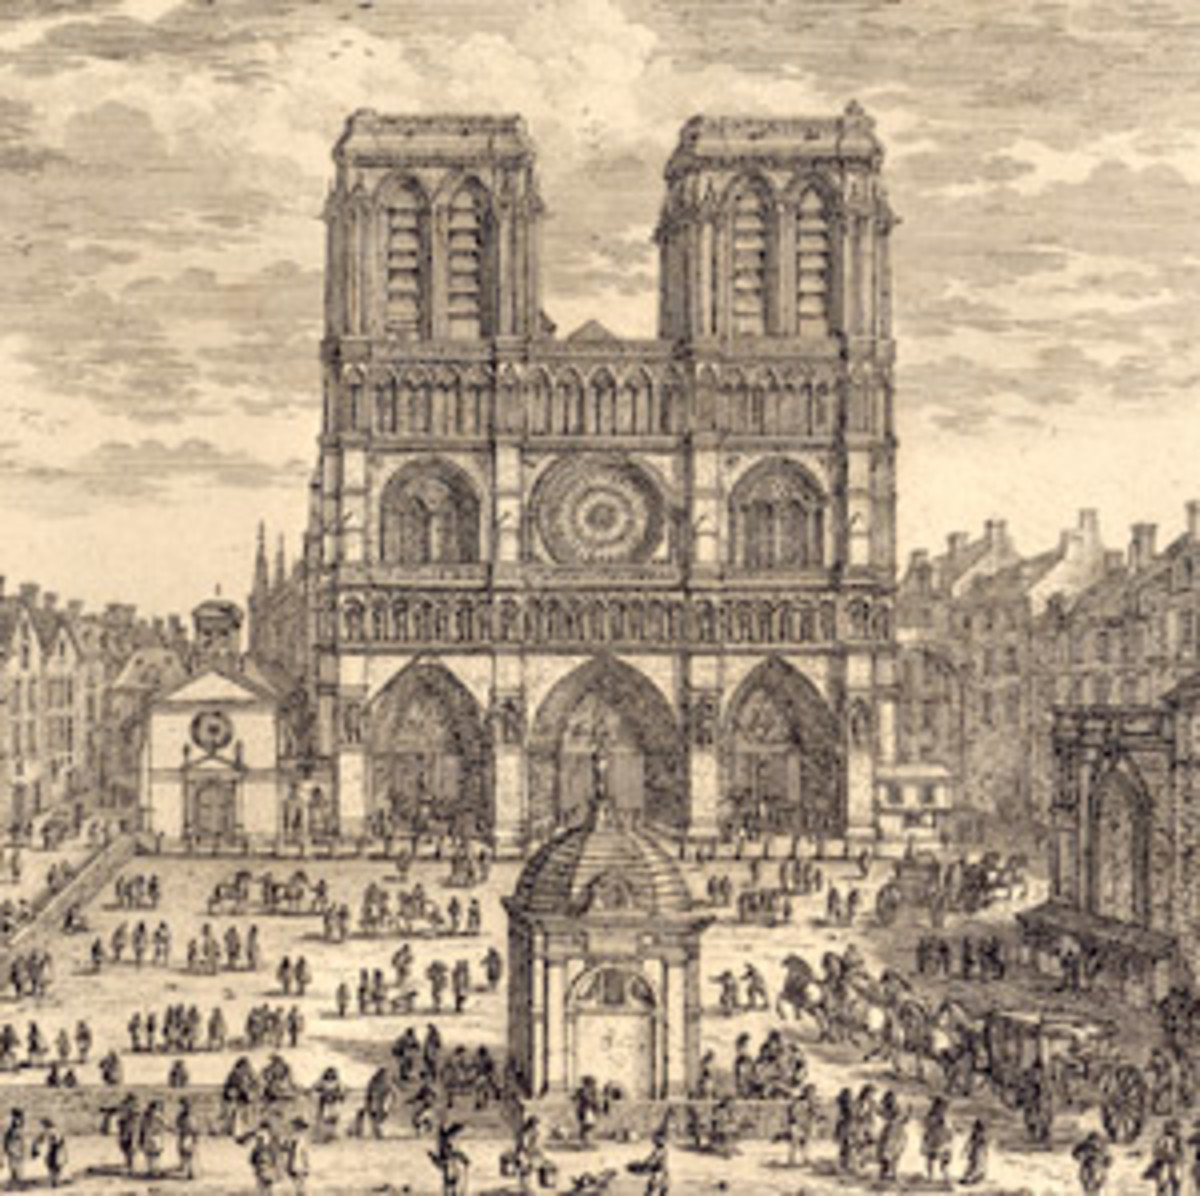 NOTRE DAME CATHEDRAL AS DRAWN IN 17TH CENTURY FRANCE